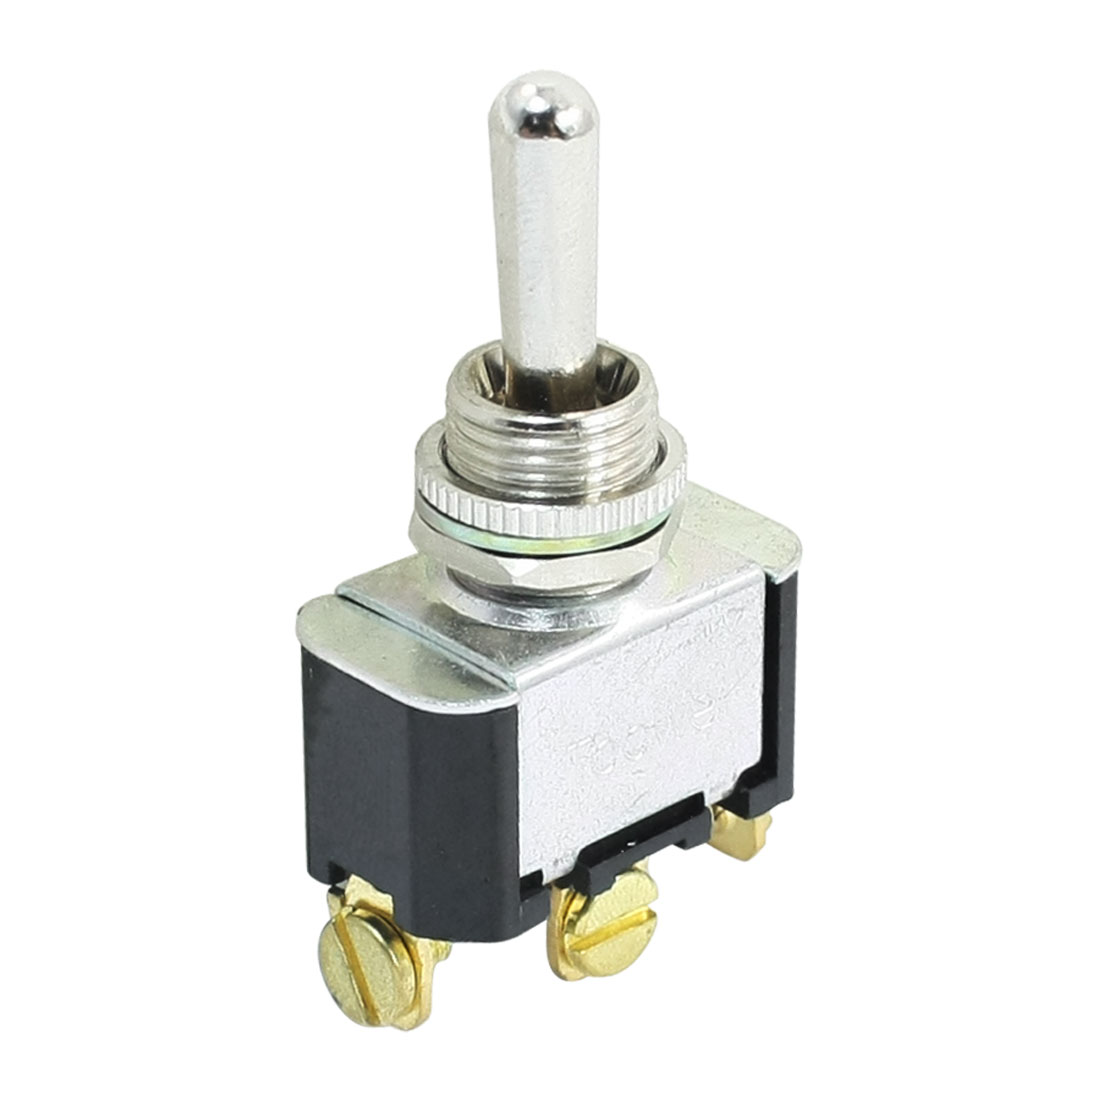 12mm Panel Mounted SPDT ON-OFF-ON Latching Toggle Switch AC 250V 10A T6013W